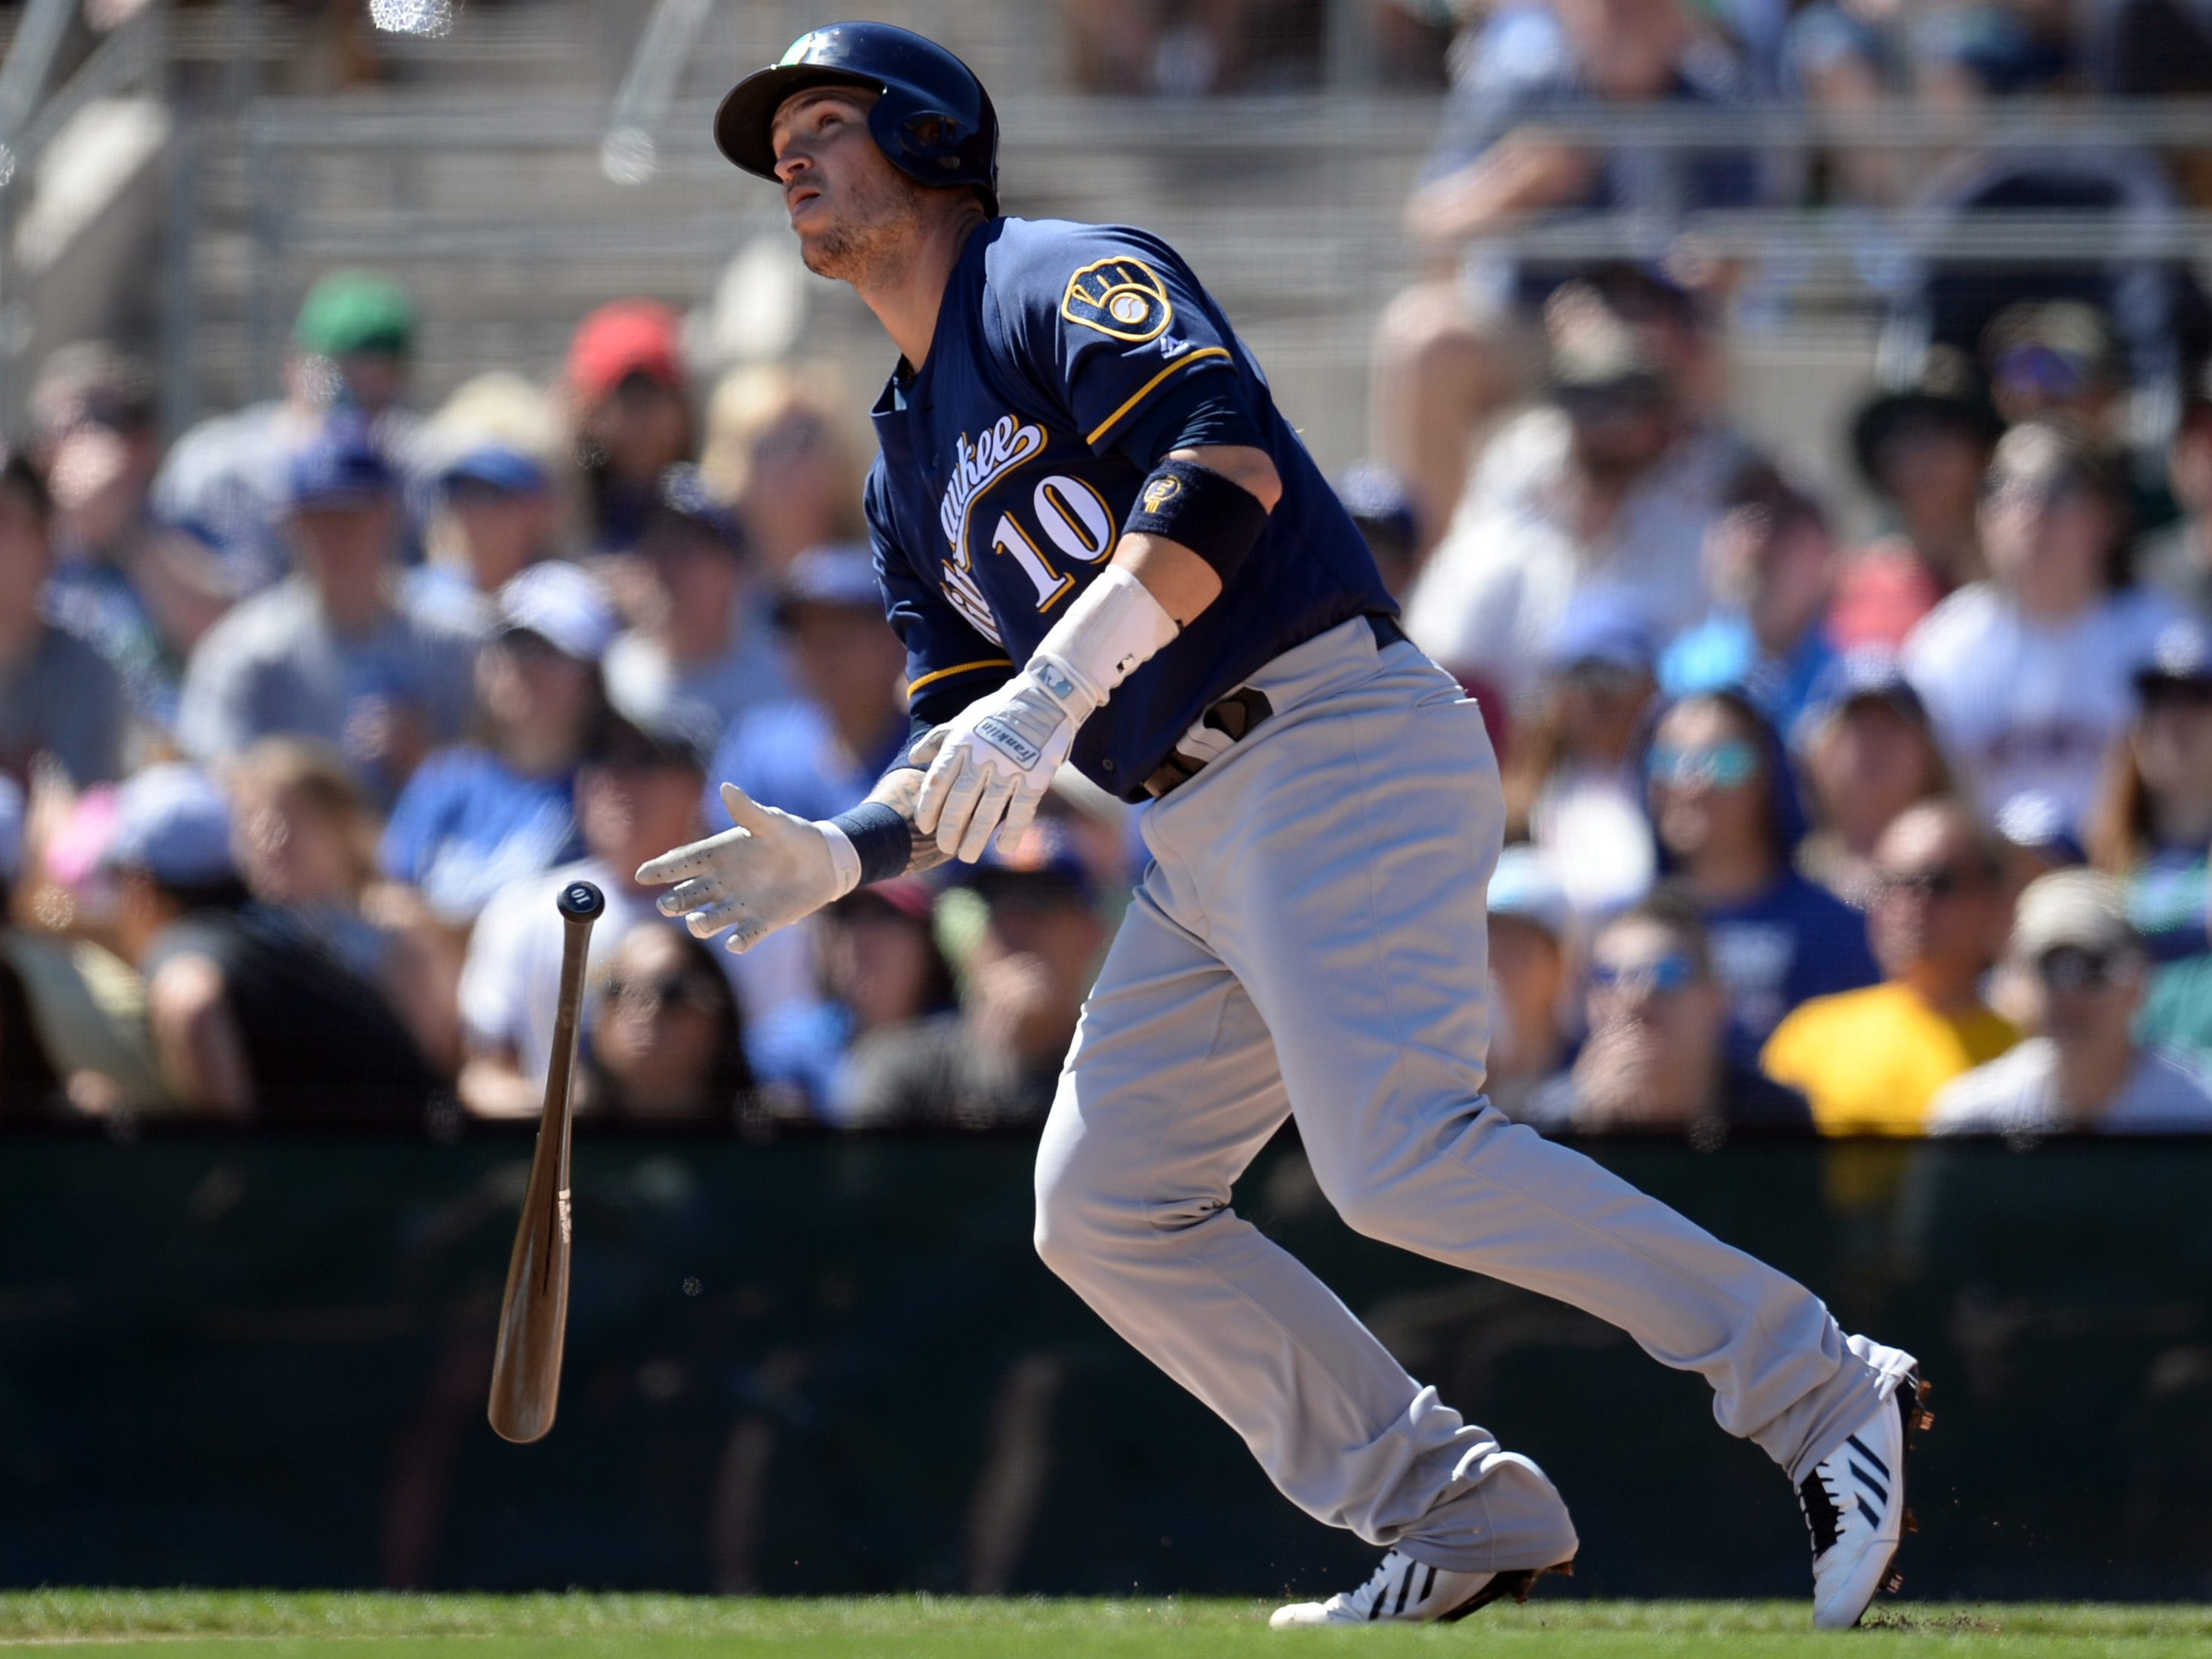 Brewers catcher Yasmani Grandal flies out to left against the Dodgers in the second inning. Grandal was unable to come up with a hit in two at bats against his former team.